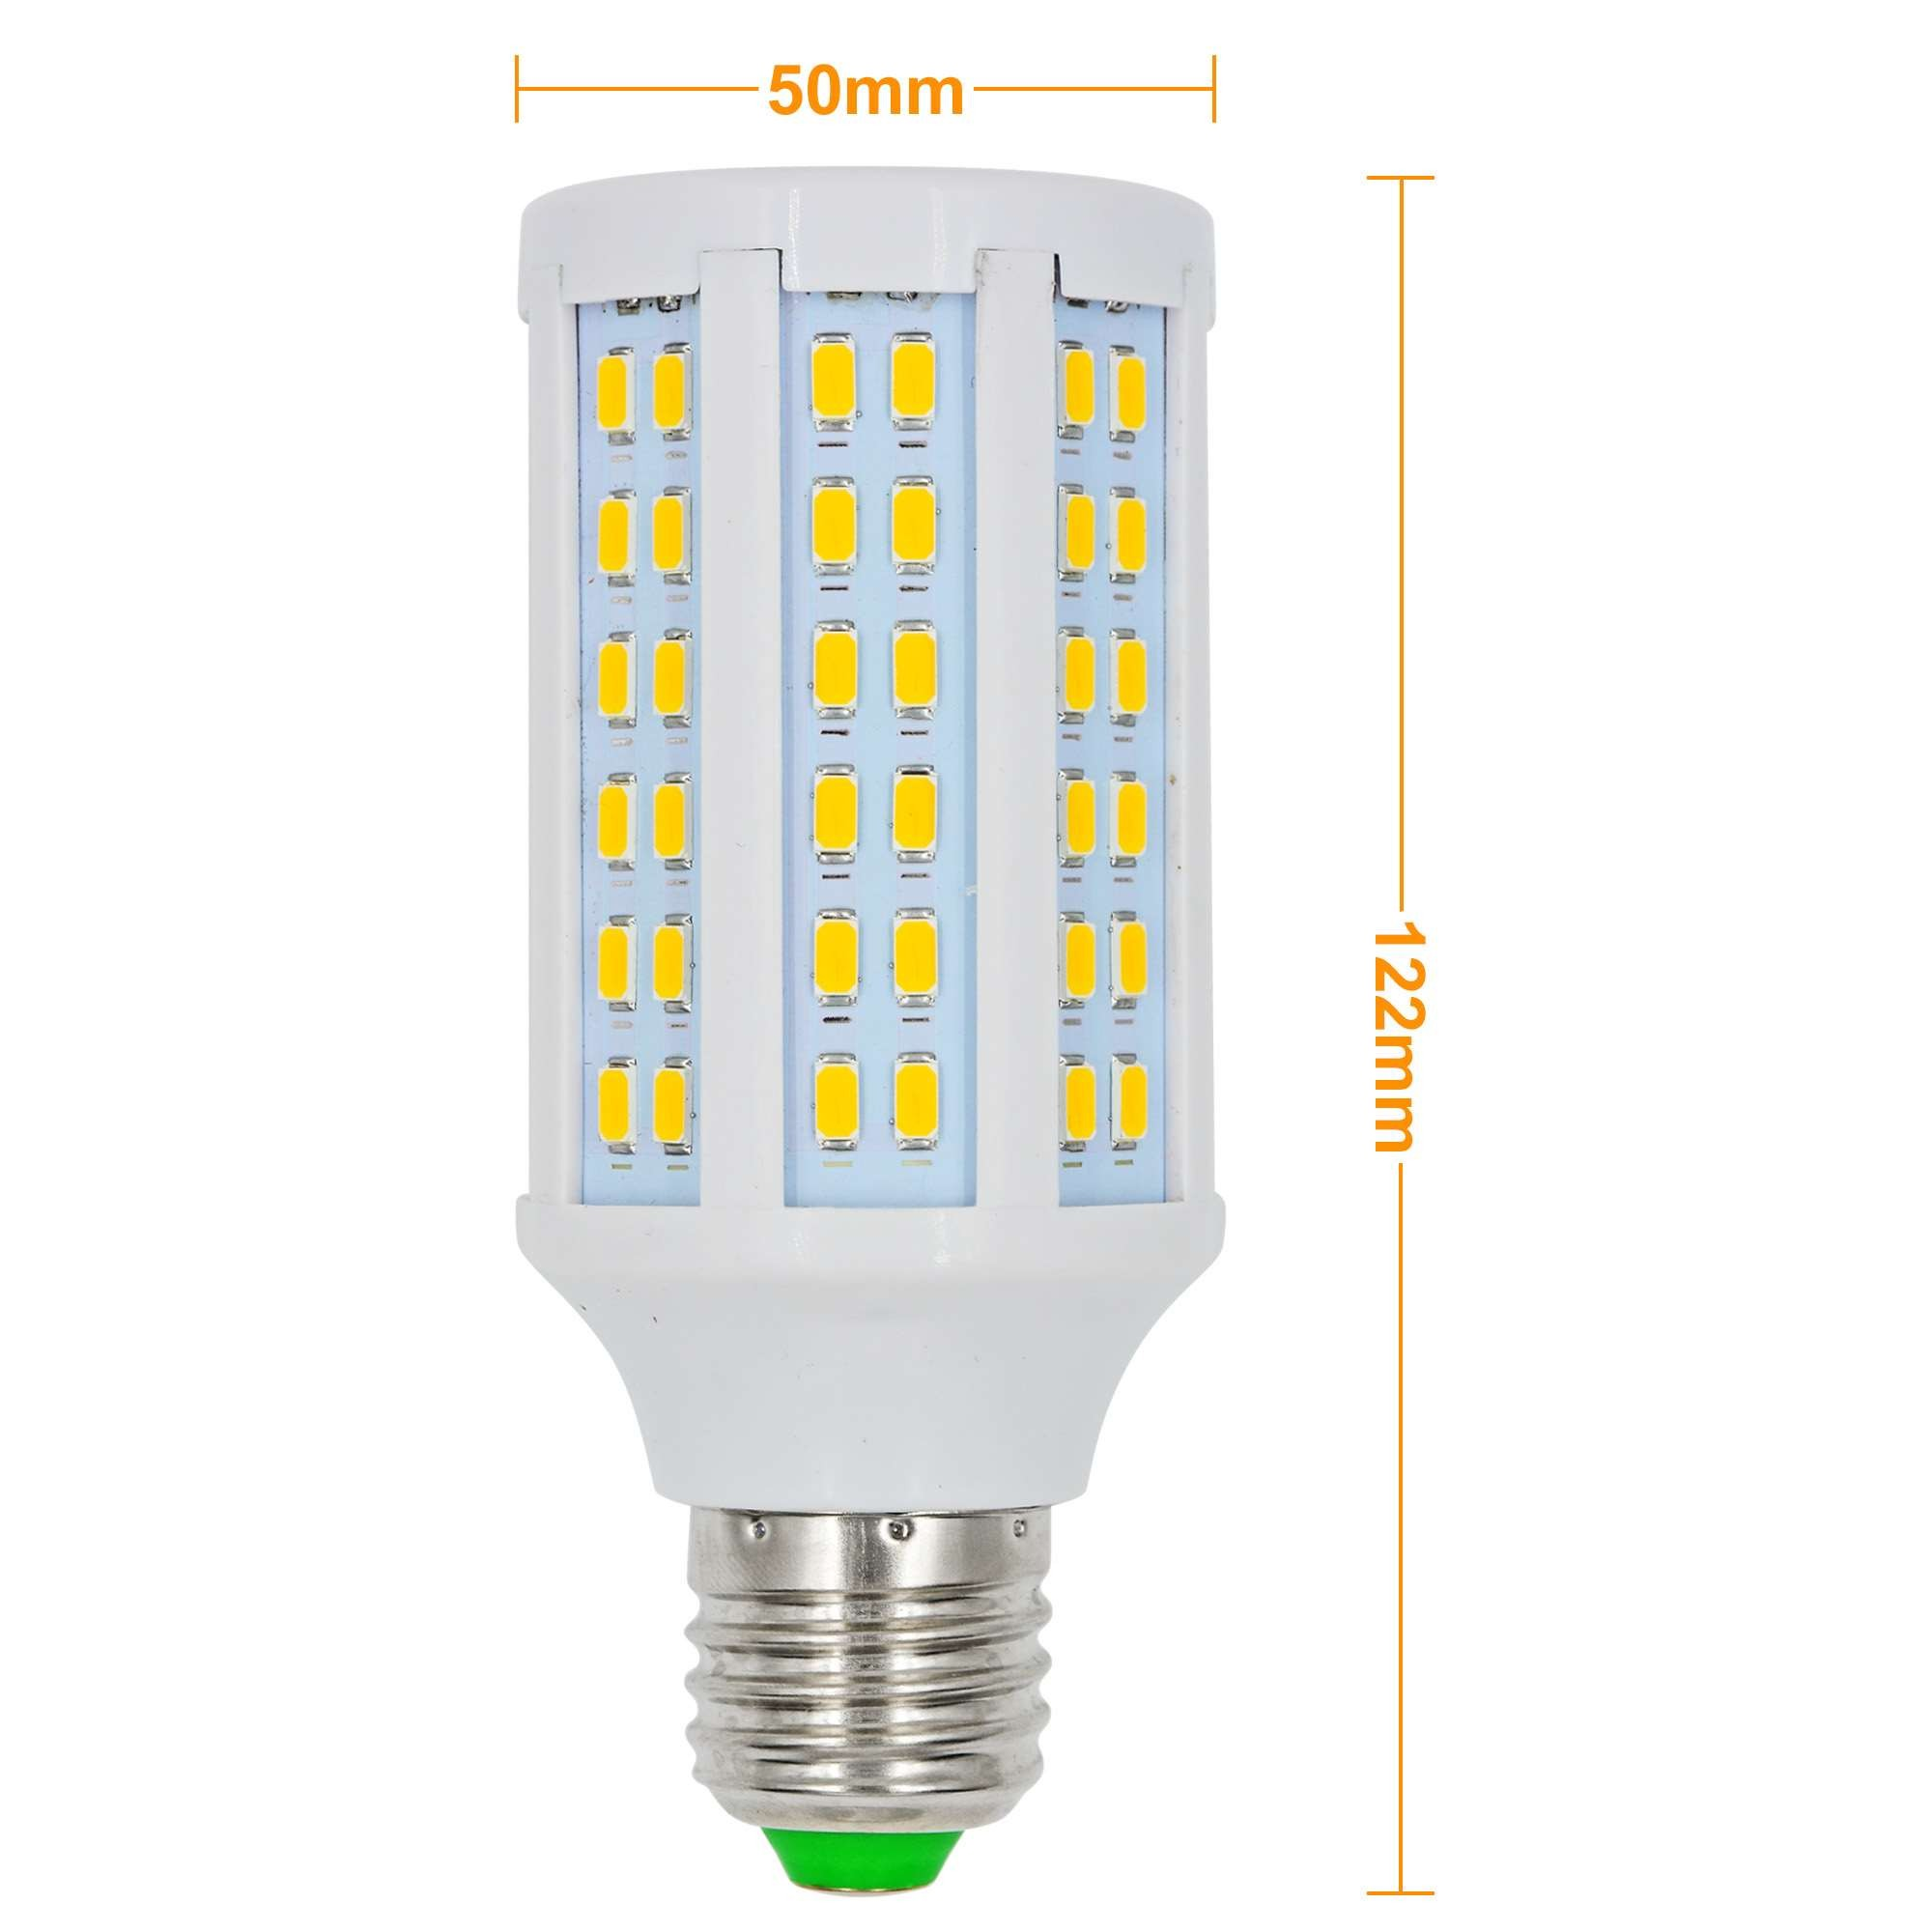 Mengsled Mengs E27 15w Led Corn Light 120x 5730 Smd Led Bulb Lamp Ac 85 265v In Warm White